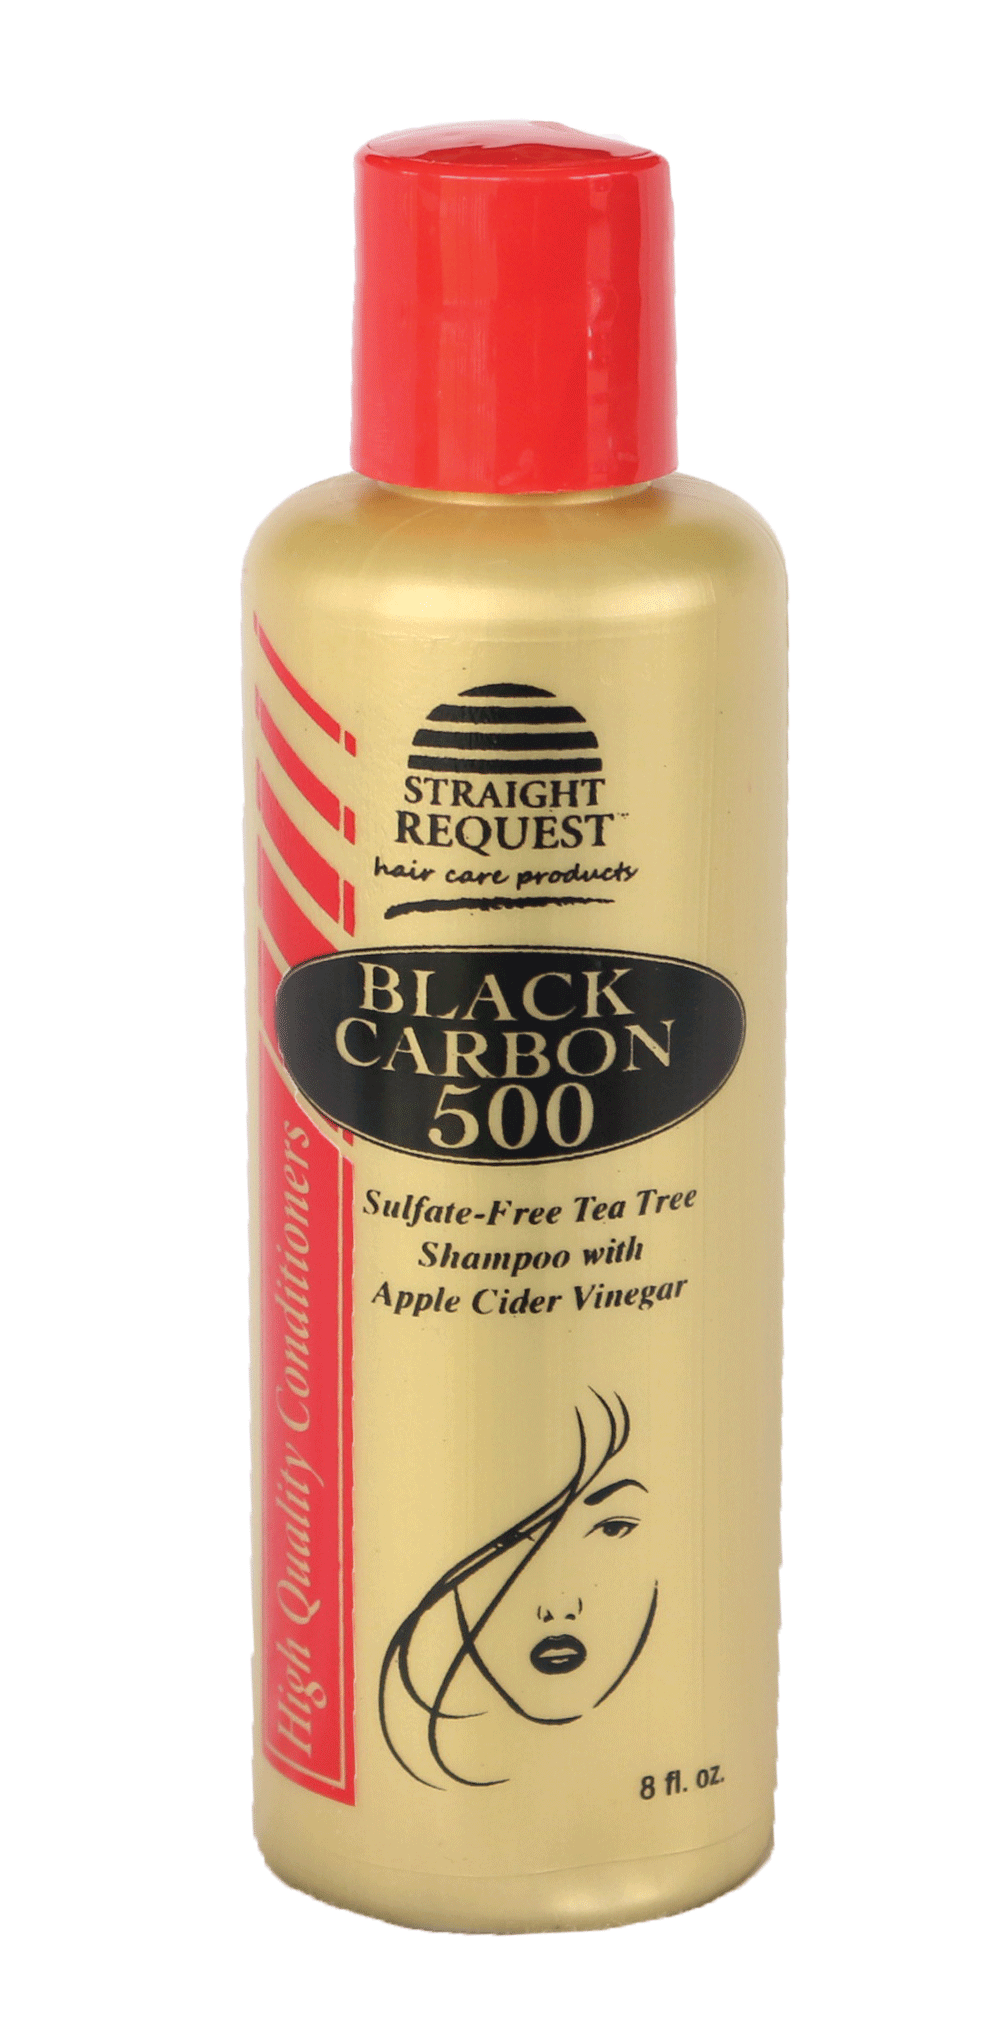 Black Carbon Treatment Shampoo - 8oz